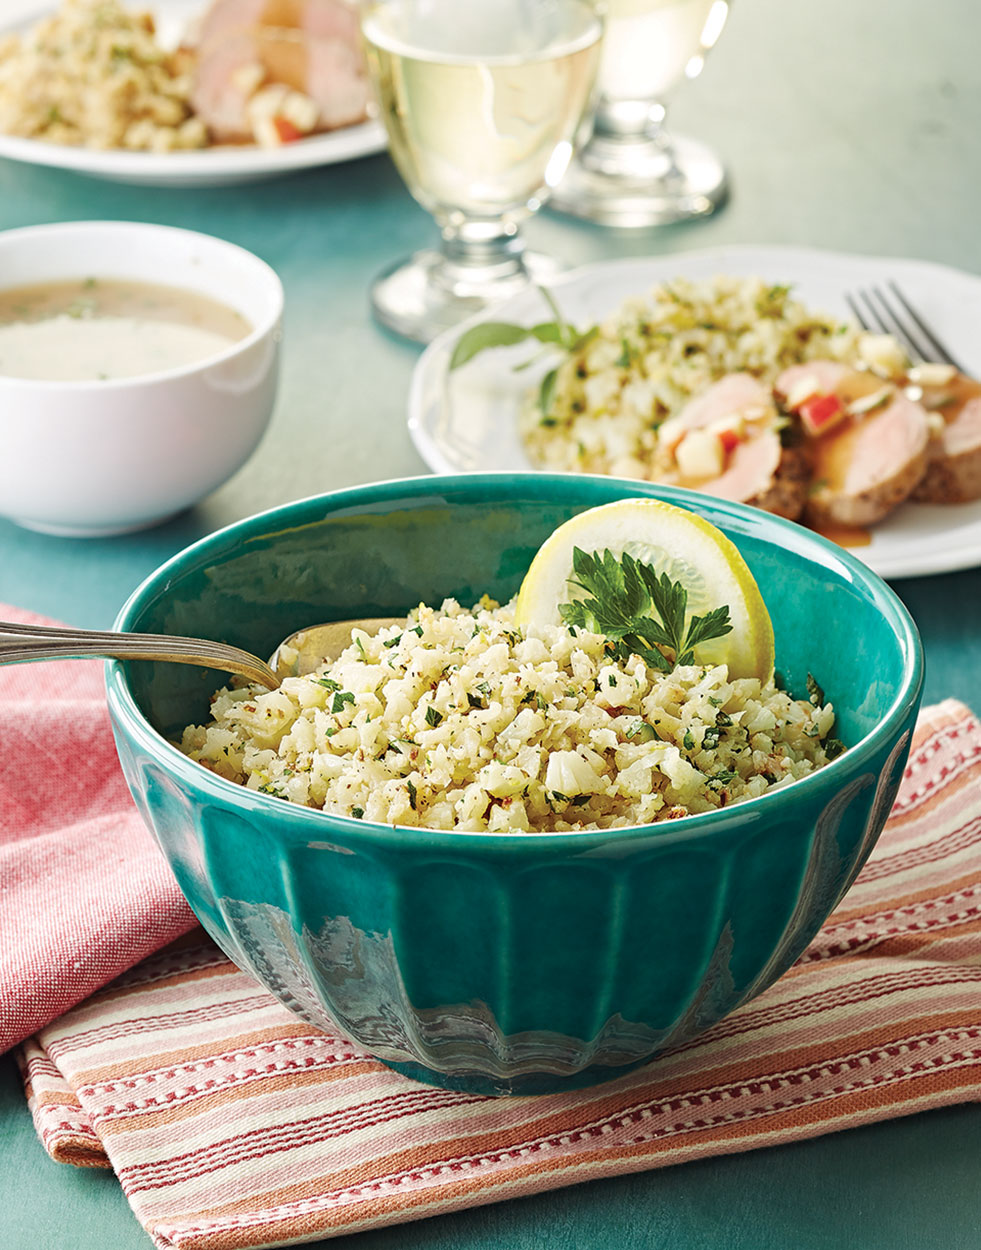 Cauliflower Rice with parsley & lemon